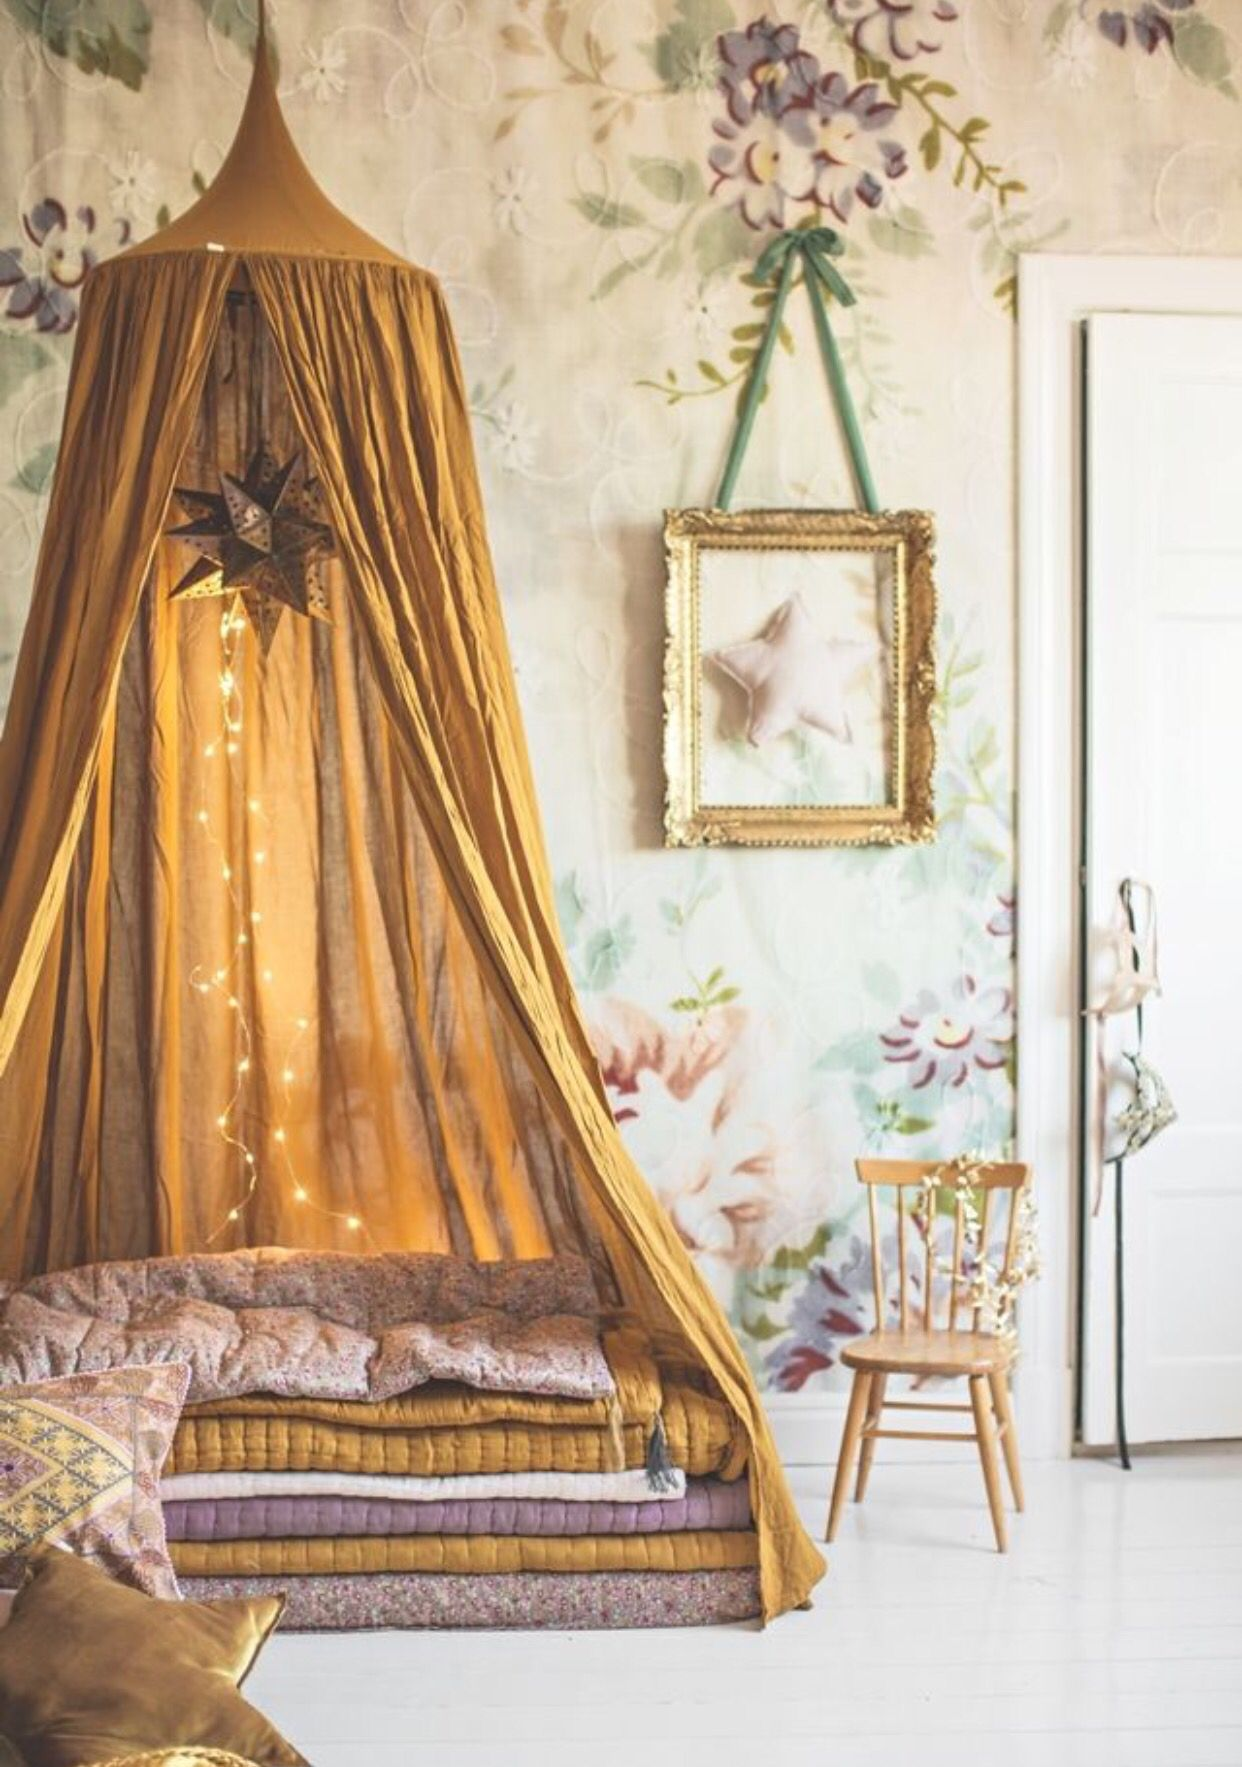 This honey yellow creates the perfect focus on the lovely teepee bed